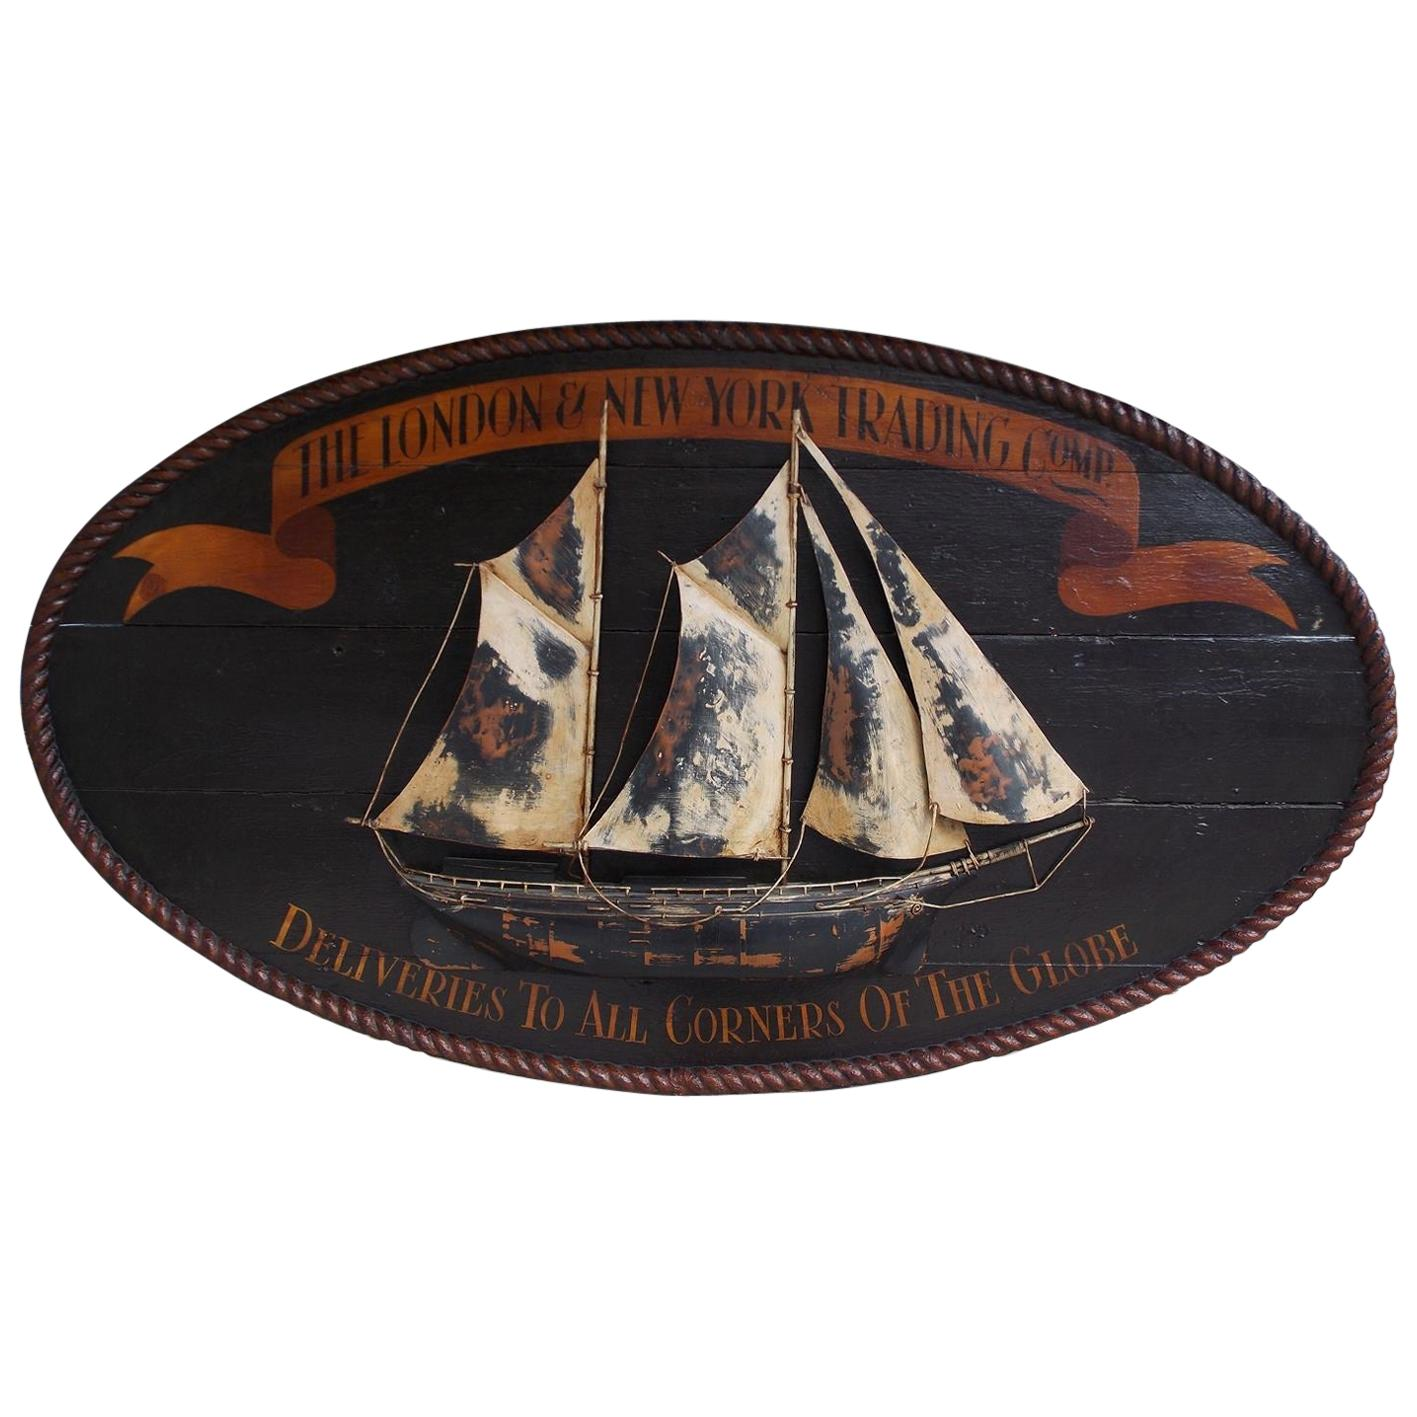 American Oval Timber Trade Sign with Two Masted Ship and Rope Boarder. C. 1850